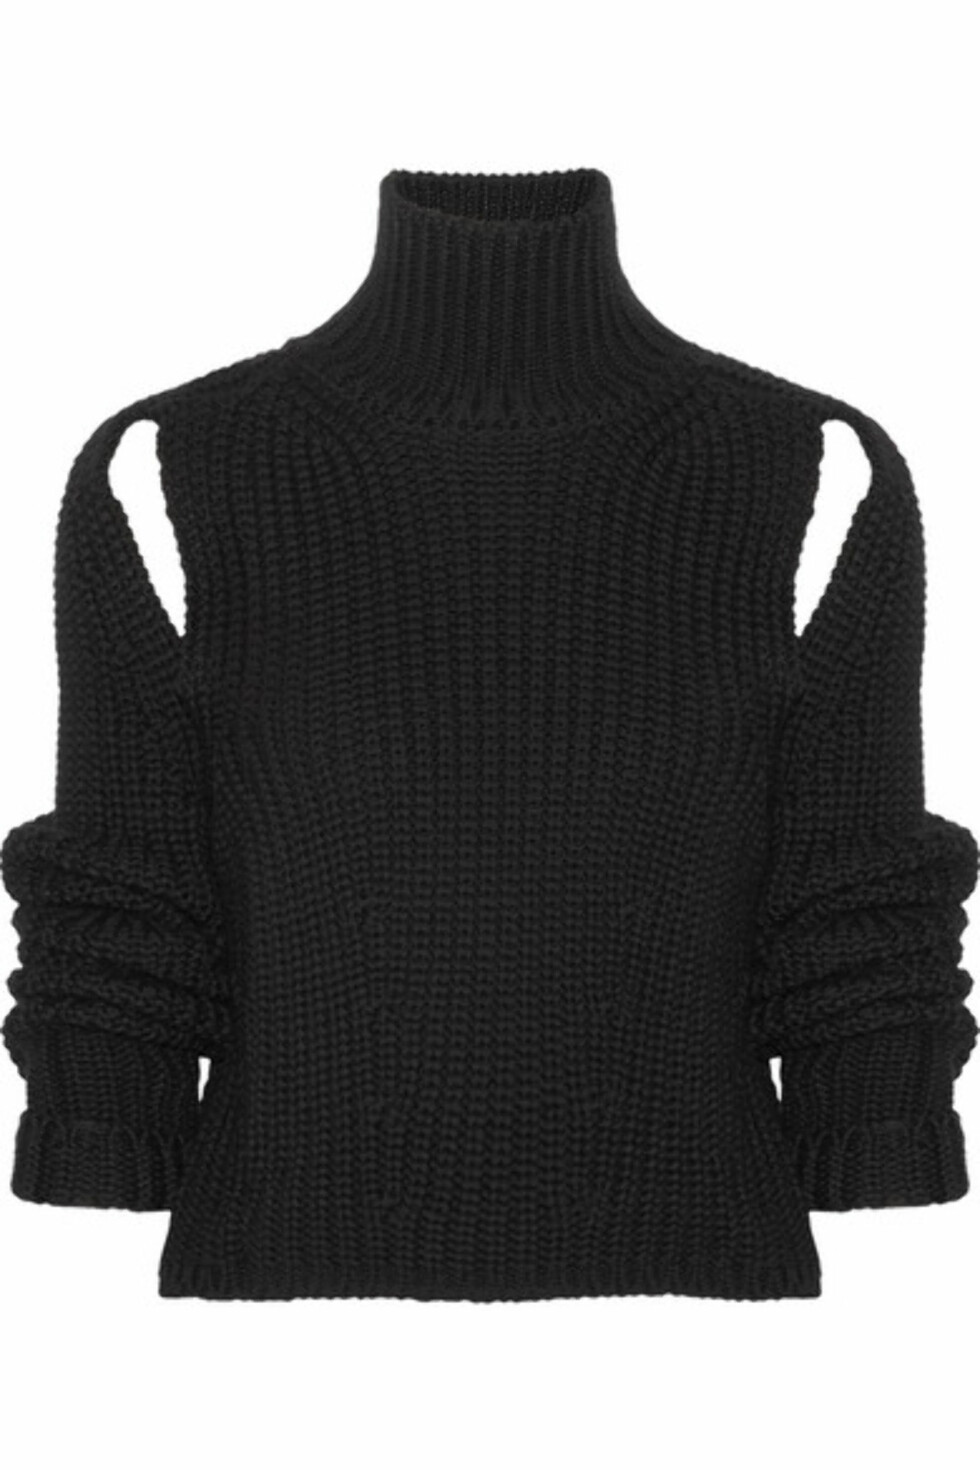 Genser fra Calvin Klein |4000,-| https://www.net-a-porter.com/no/en/product/928114/calvin_klein_205w39nyc/cropped-cutout-wool-sweater